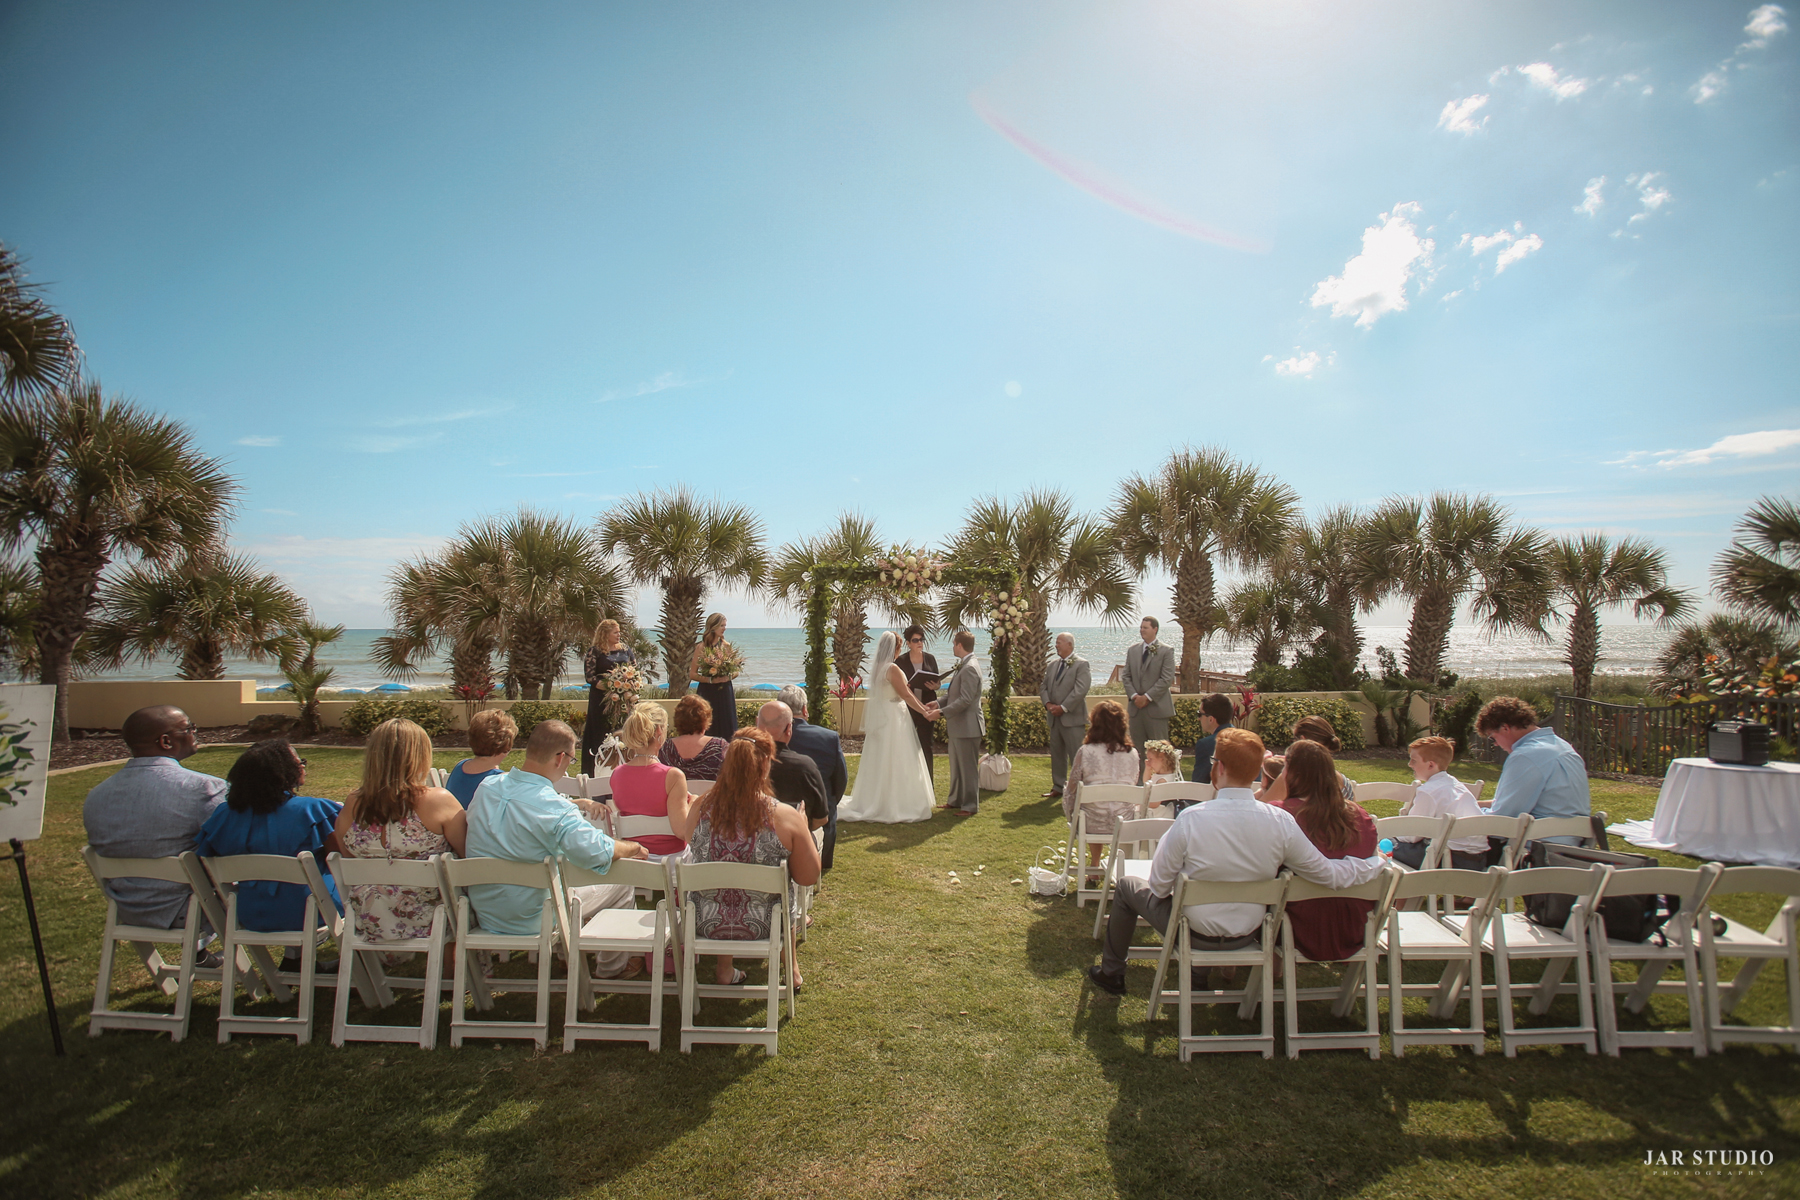 Hammock-beach-resort-wedding-by-jarstudio (11).jpg